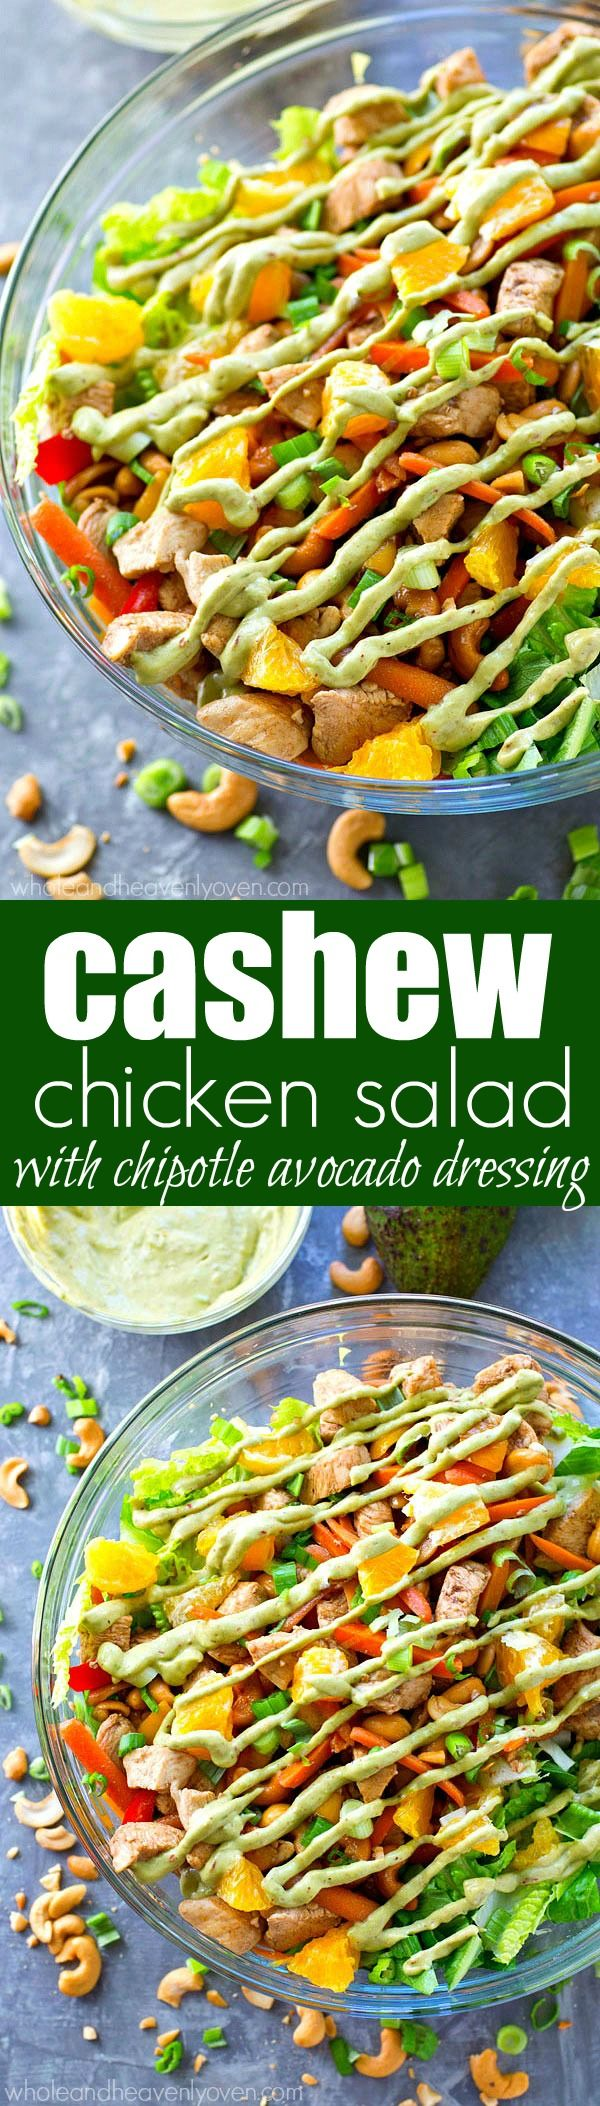 Love cashew chicken? You're going to love it even more in super-healthy salad form with an insane kicked-up chipotle avocado dressing drizzled on top!